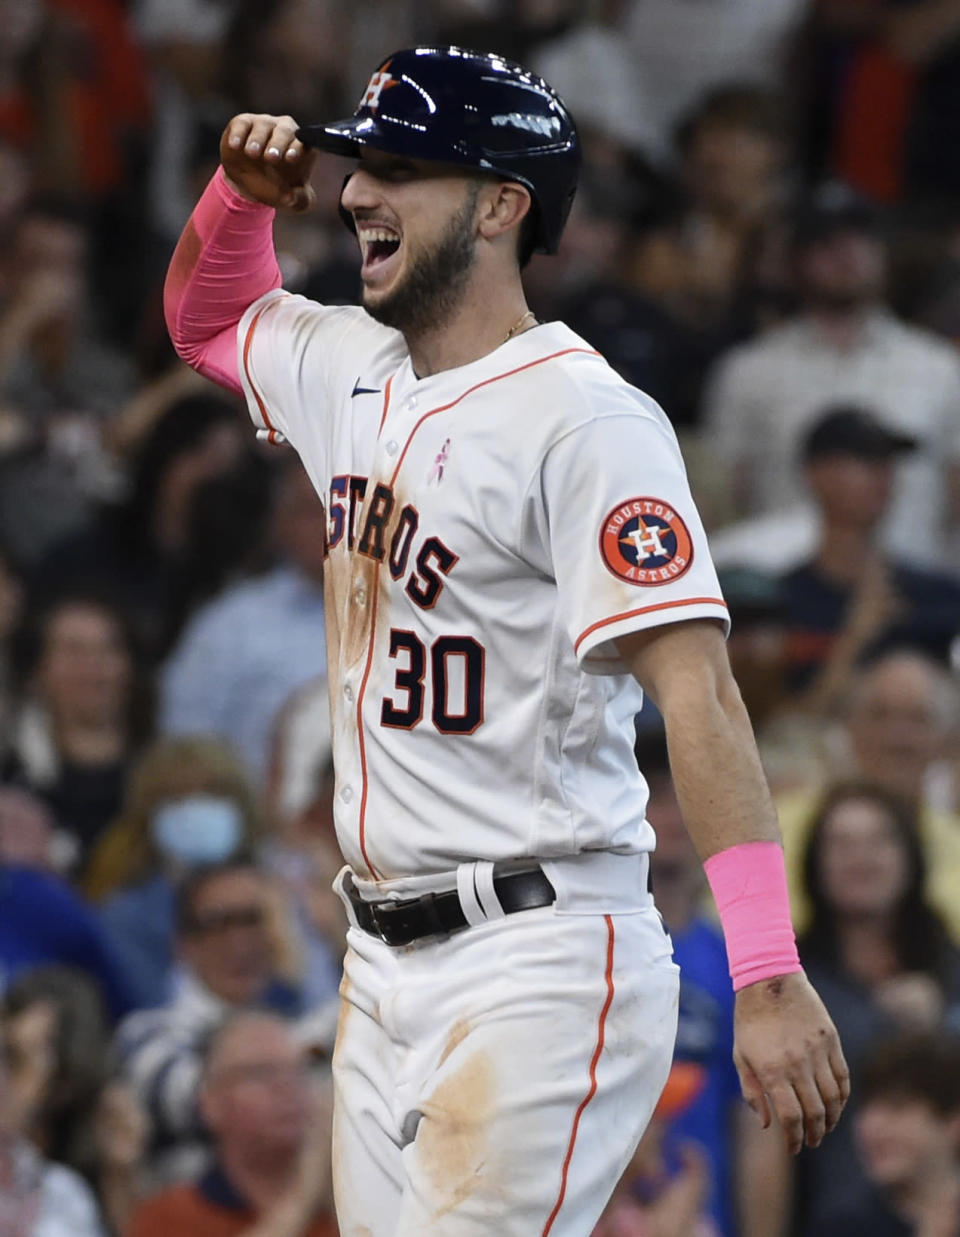 Houston Astros' Kyle Tucker celebrates his three-run home run during the fourth inning of a baseball game against the Toronto Blue Jays, Sunday, May 9, 2021, in Houston. (AP Photo/Eric Christian Smith)